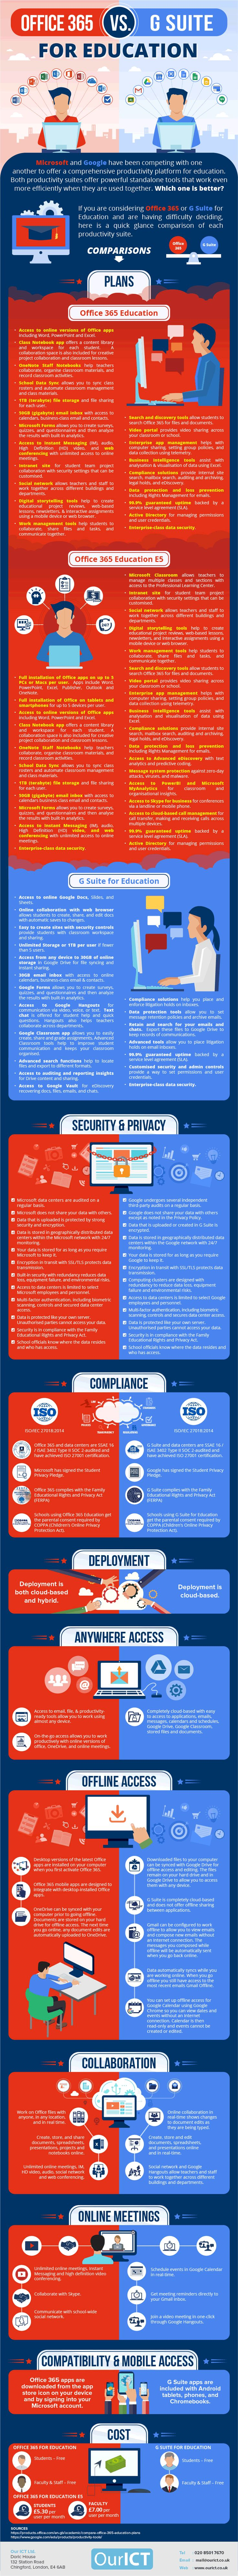 A detailed comparison of Microsoft Office 365 Education and G Suite for education (Google). Perfect for teachers and ICT managers that are considering using one of these cloud-based productivity suites.